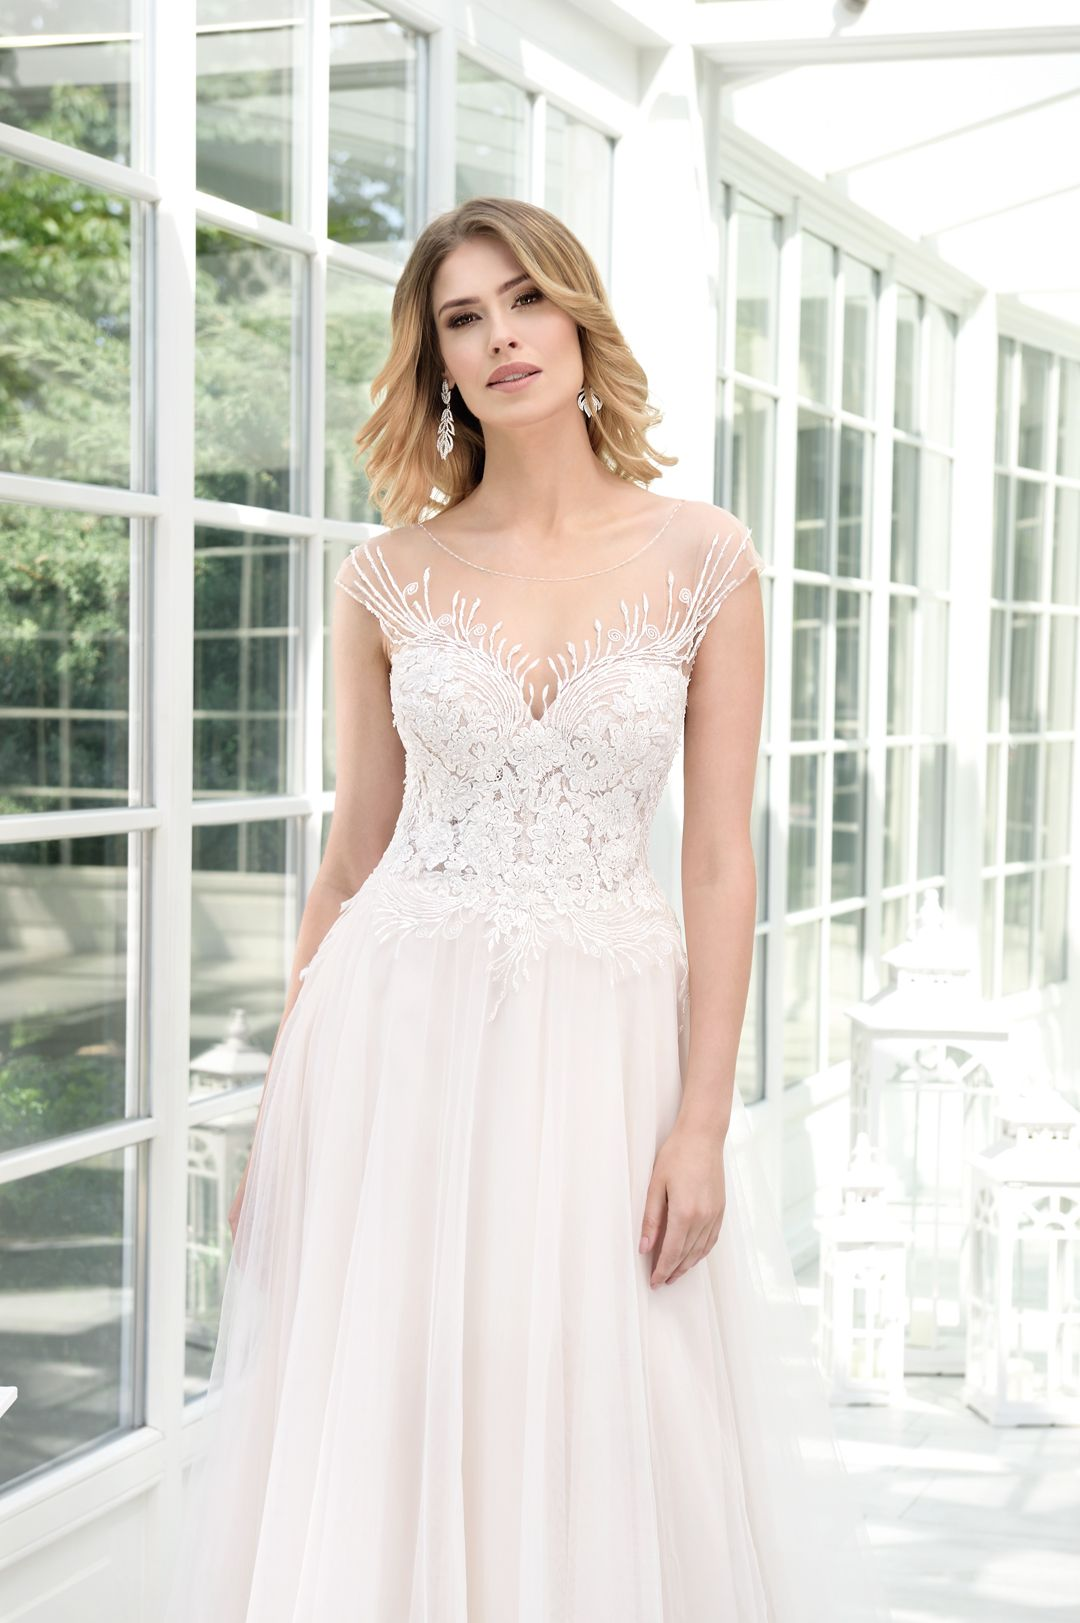 Hochzeitskleid Agnes Bridal Dream Kollektion 12 in 12